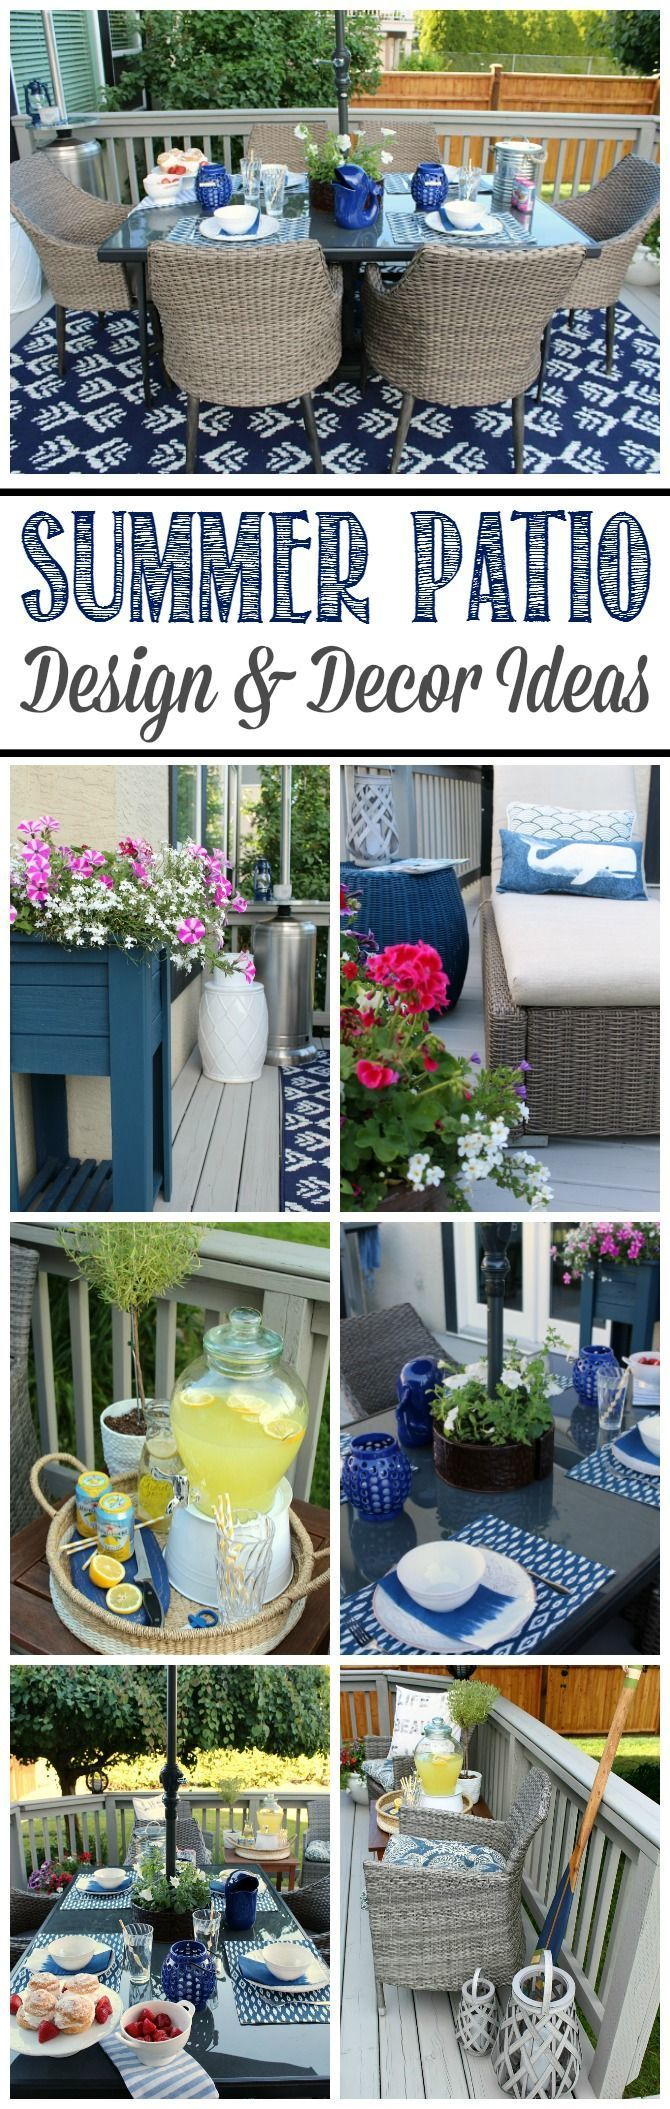 Get inspired to create your own backyard patio or outdoor retreat with these simple summer patio ideas.